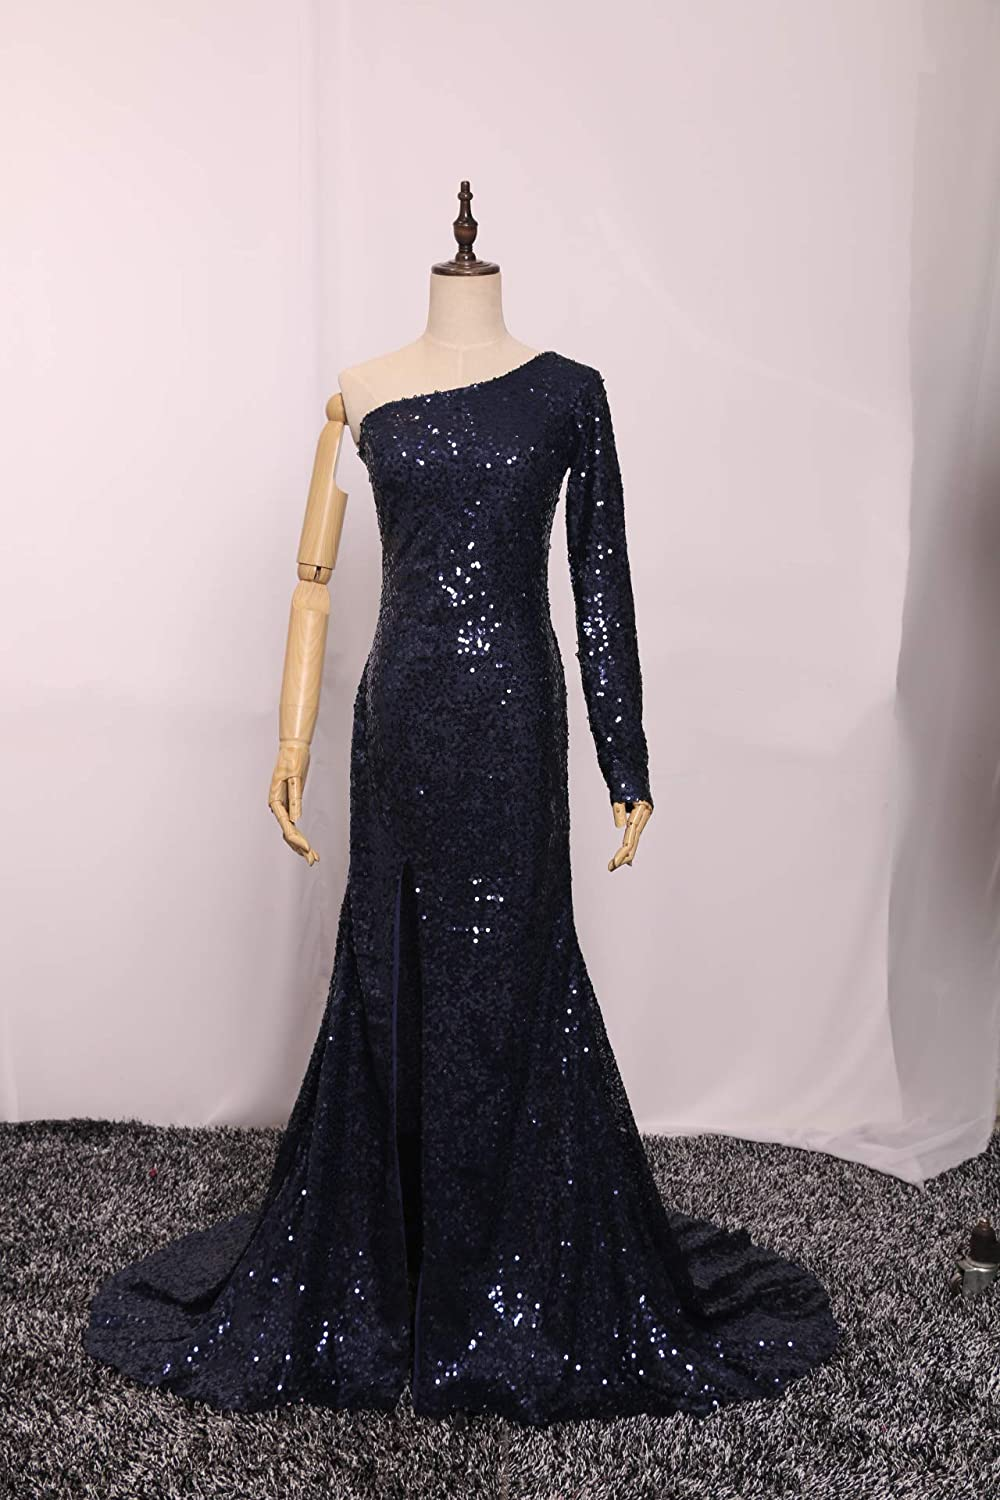 YMSHA Womens One Shoulder Sequins Evening Prom Dresses Long Formal Party Gowns PM11